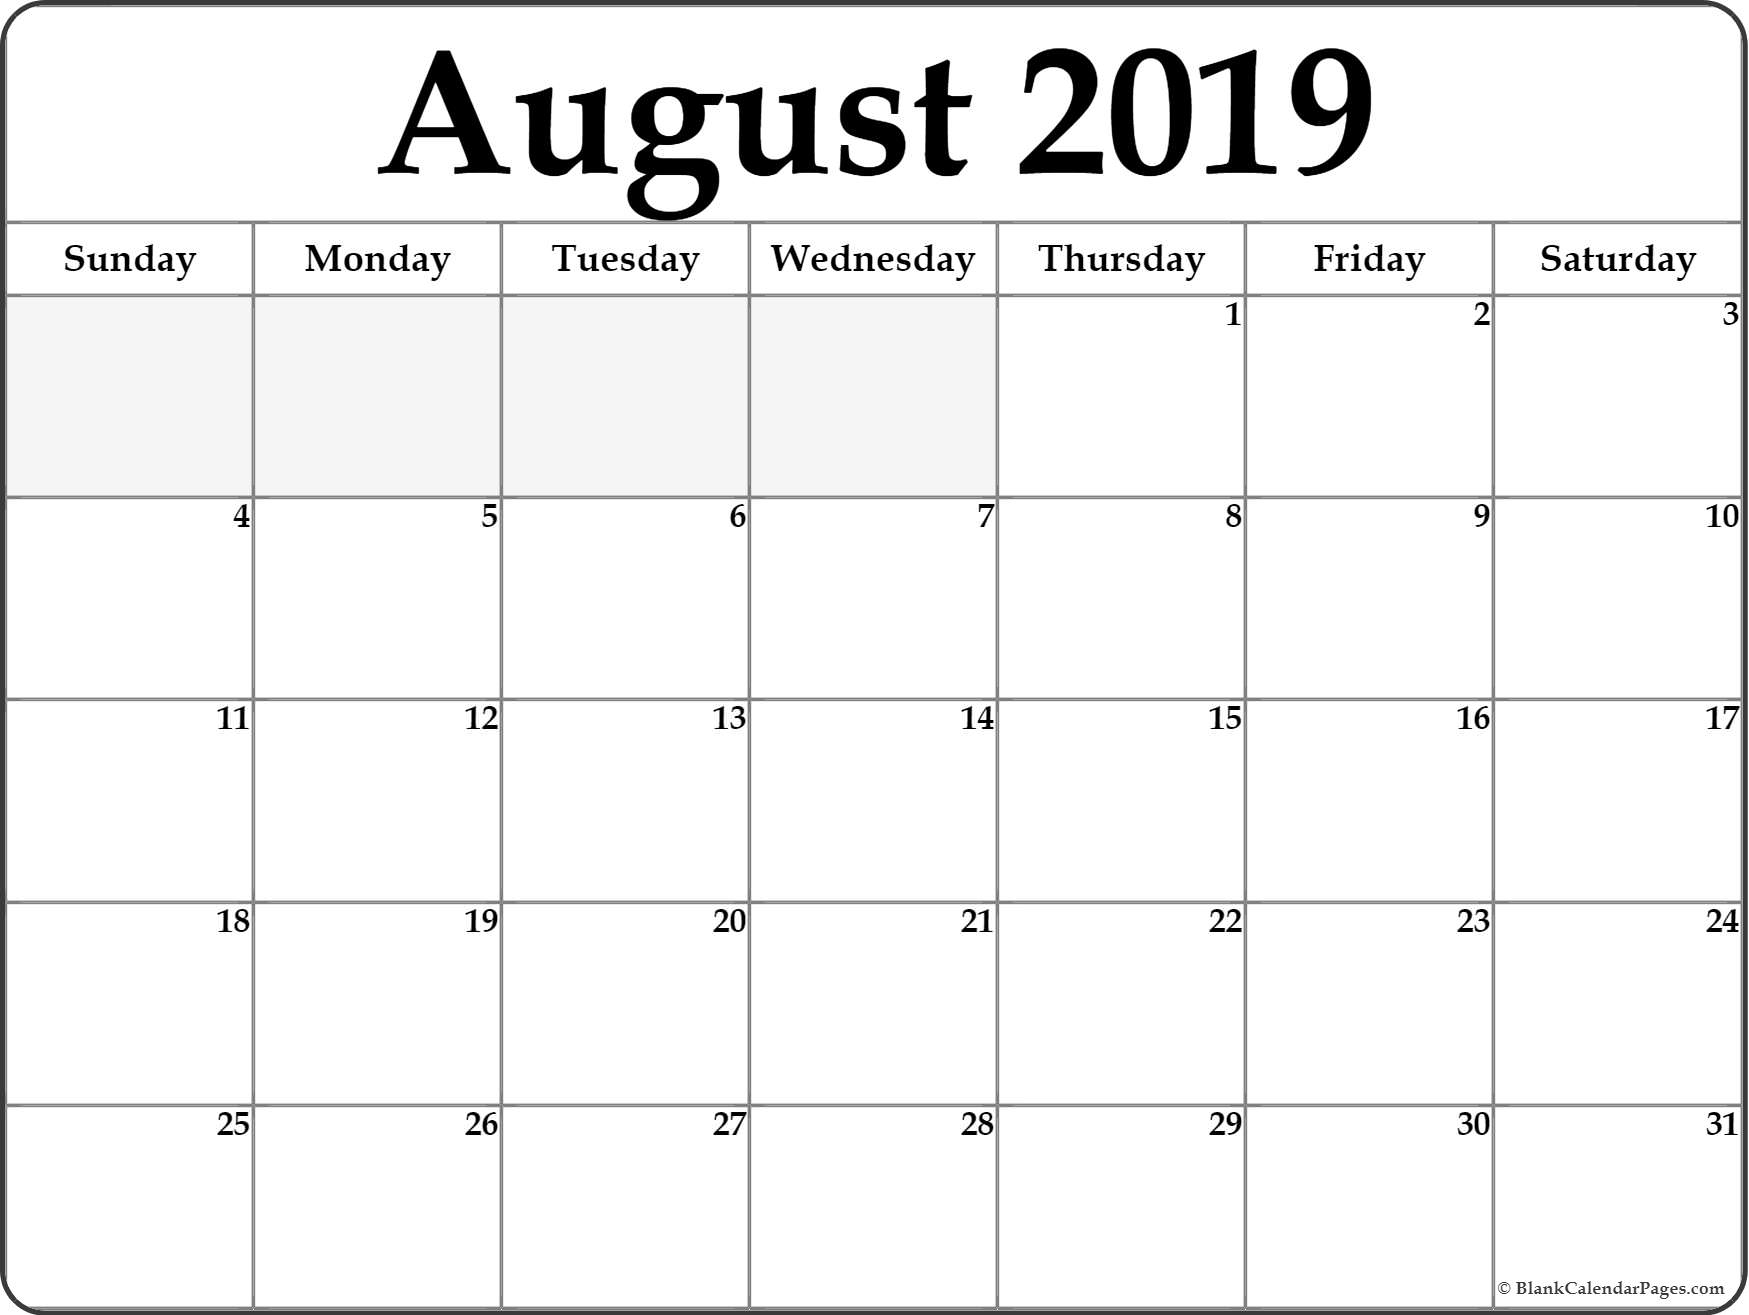 August 2019 Calendar | Free Printable Monthly Calendars within Blank Calendar August Printable